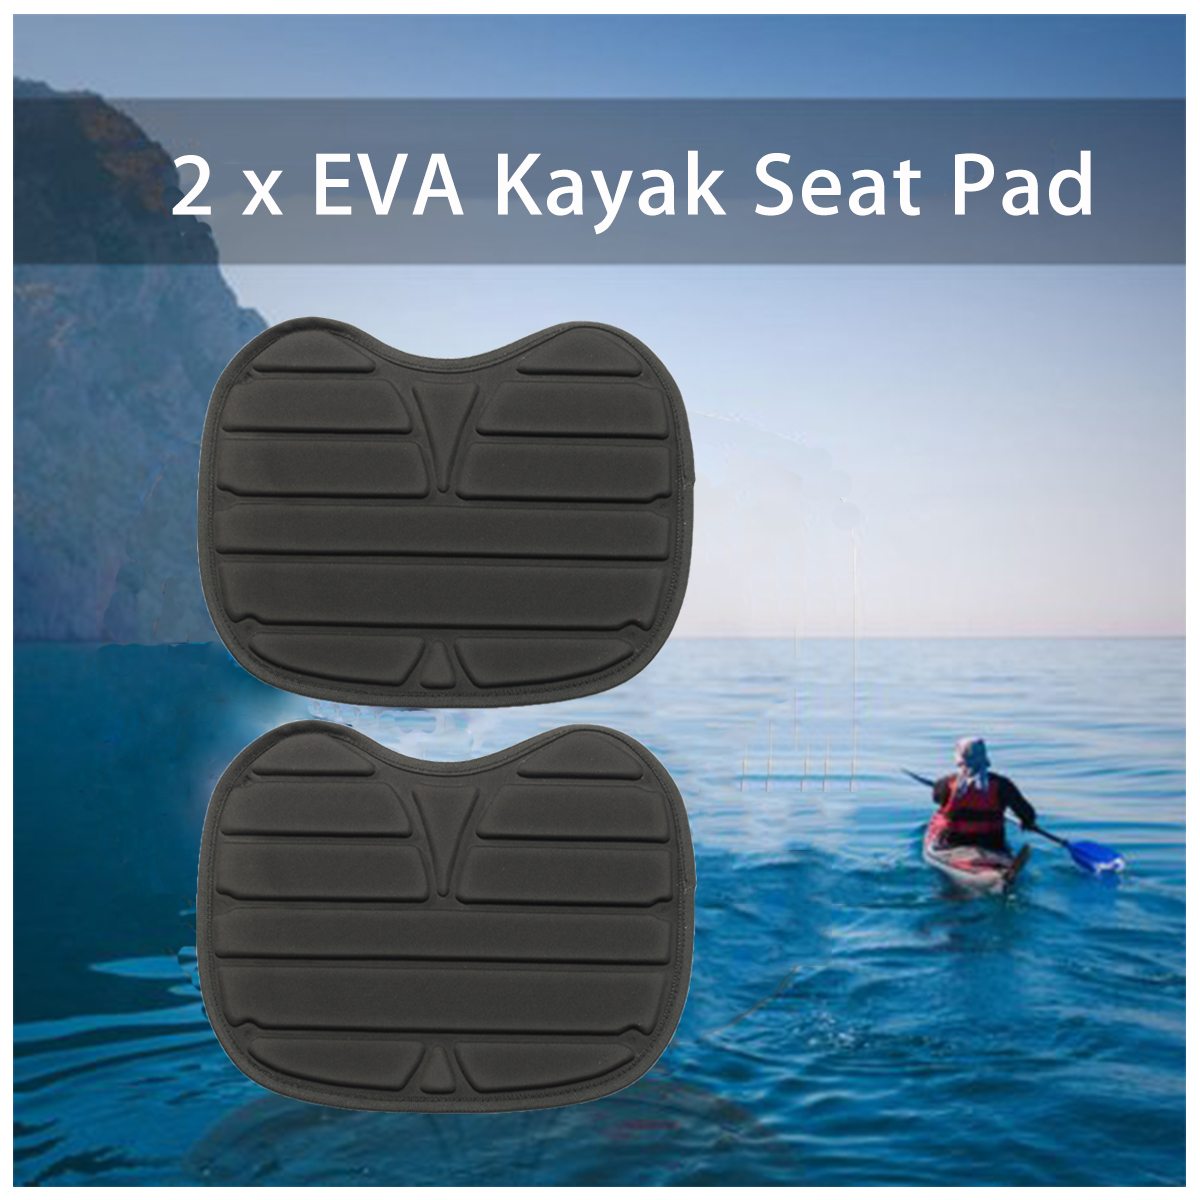 2Pcs Soft Comfortable EVA Padded Seat Cushion for Outdoor Kayak Canoe Dinghy Boat